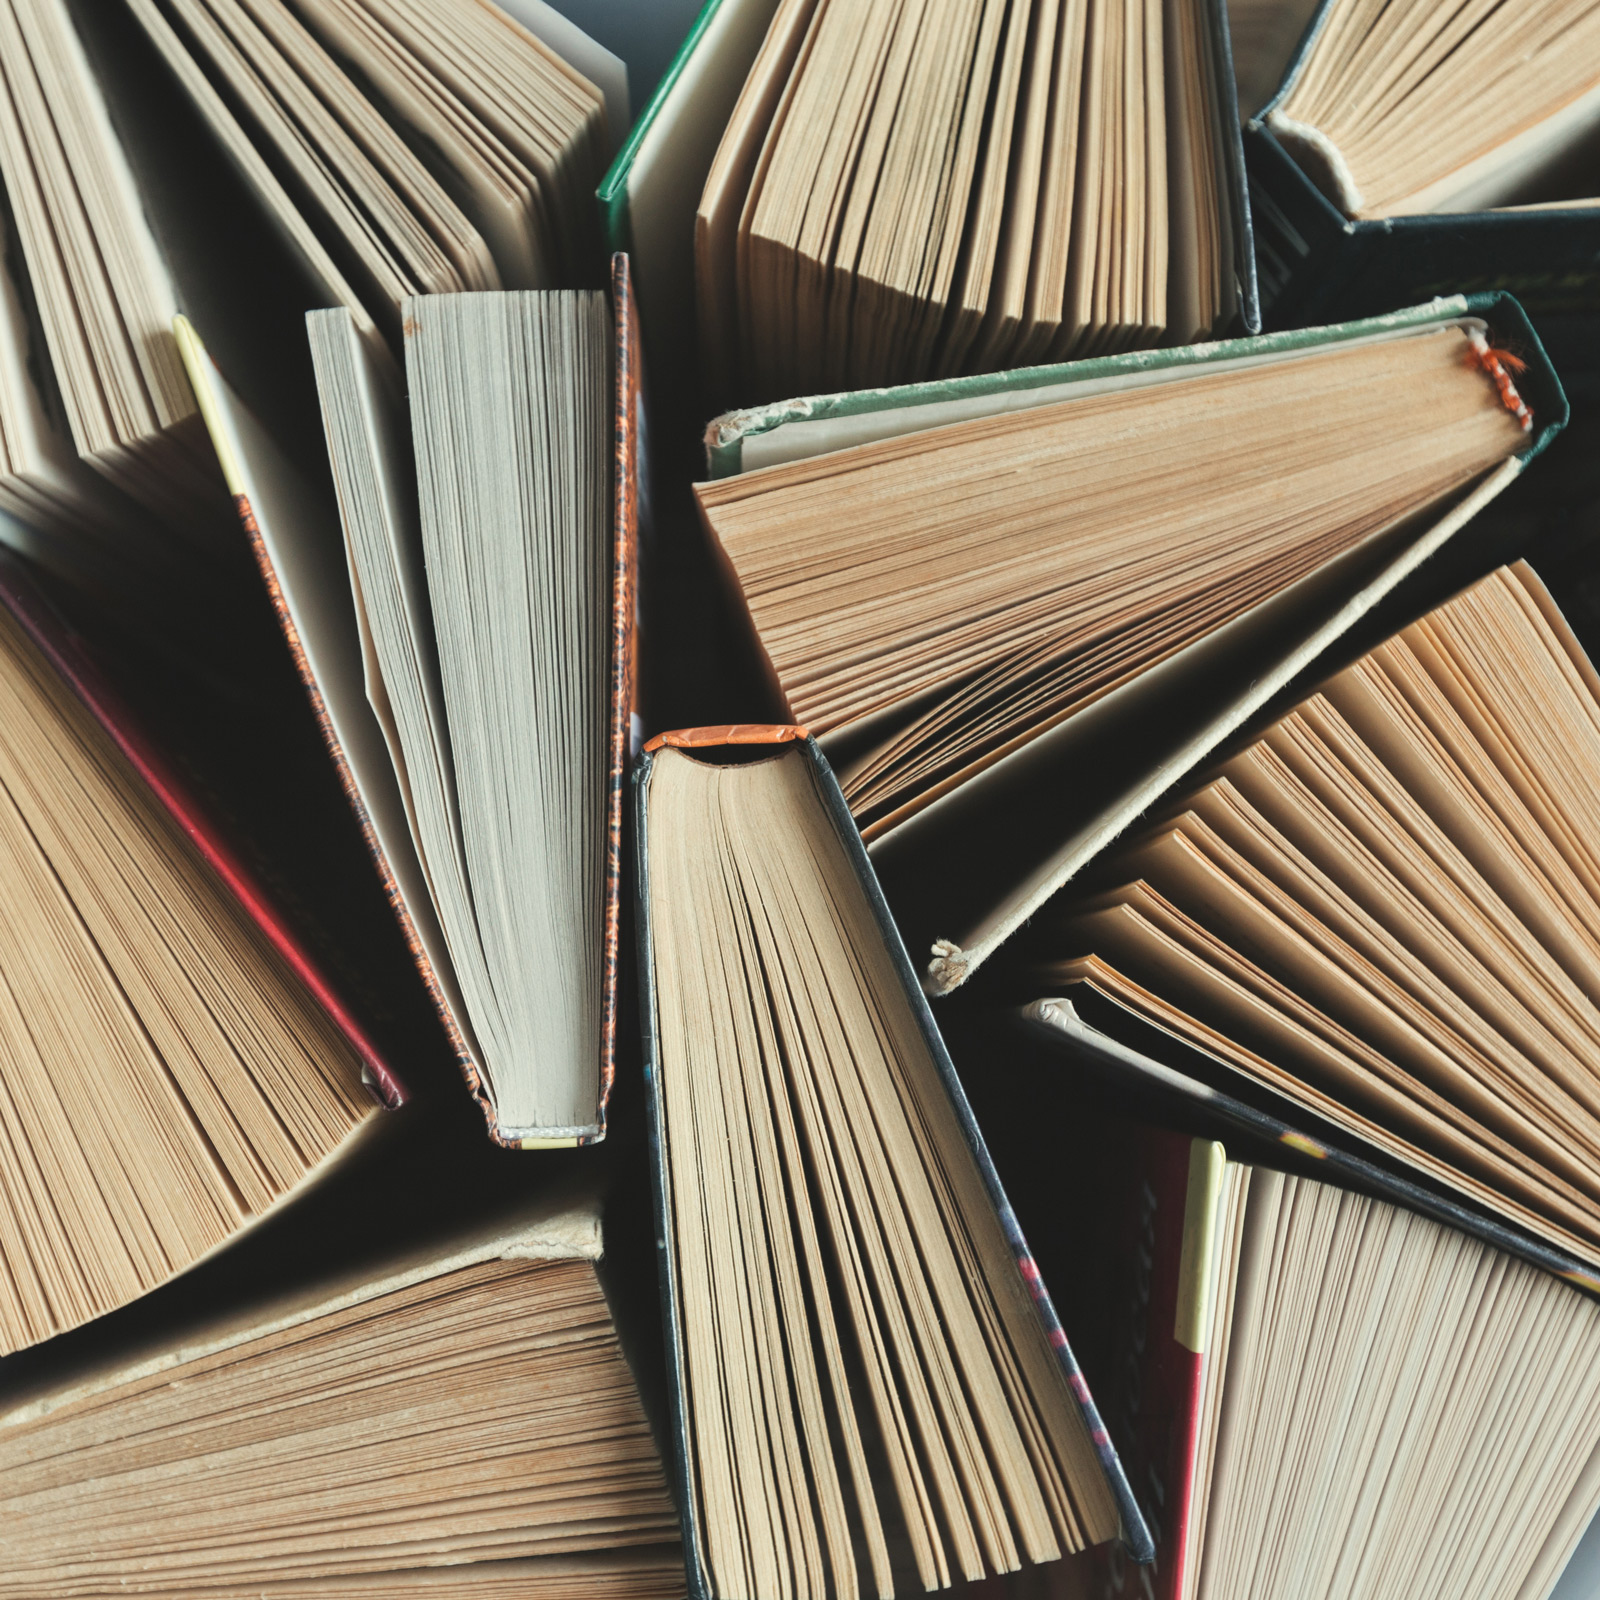 Image for '15 Books To Read While Social Distancing'